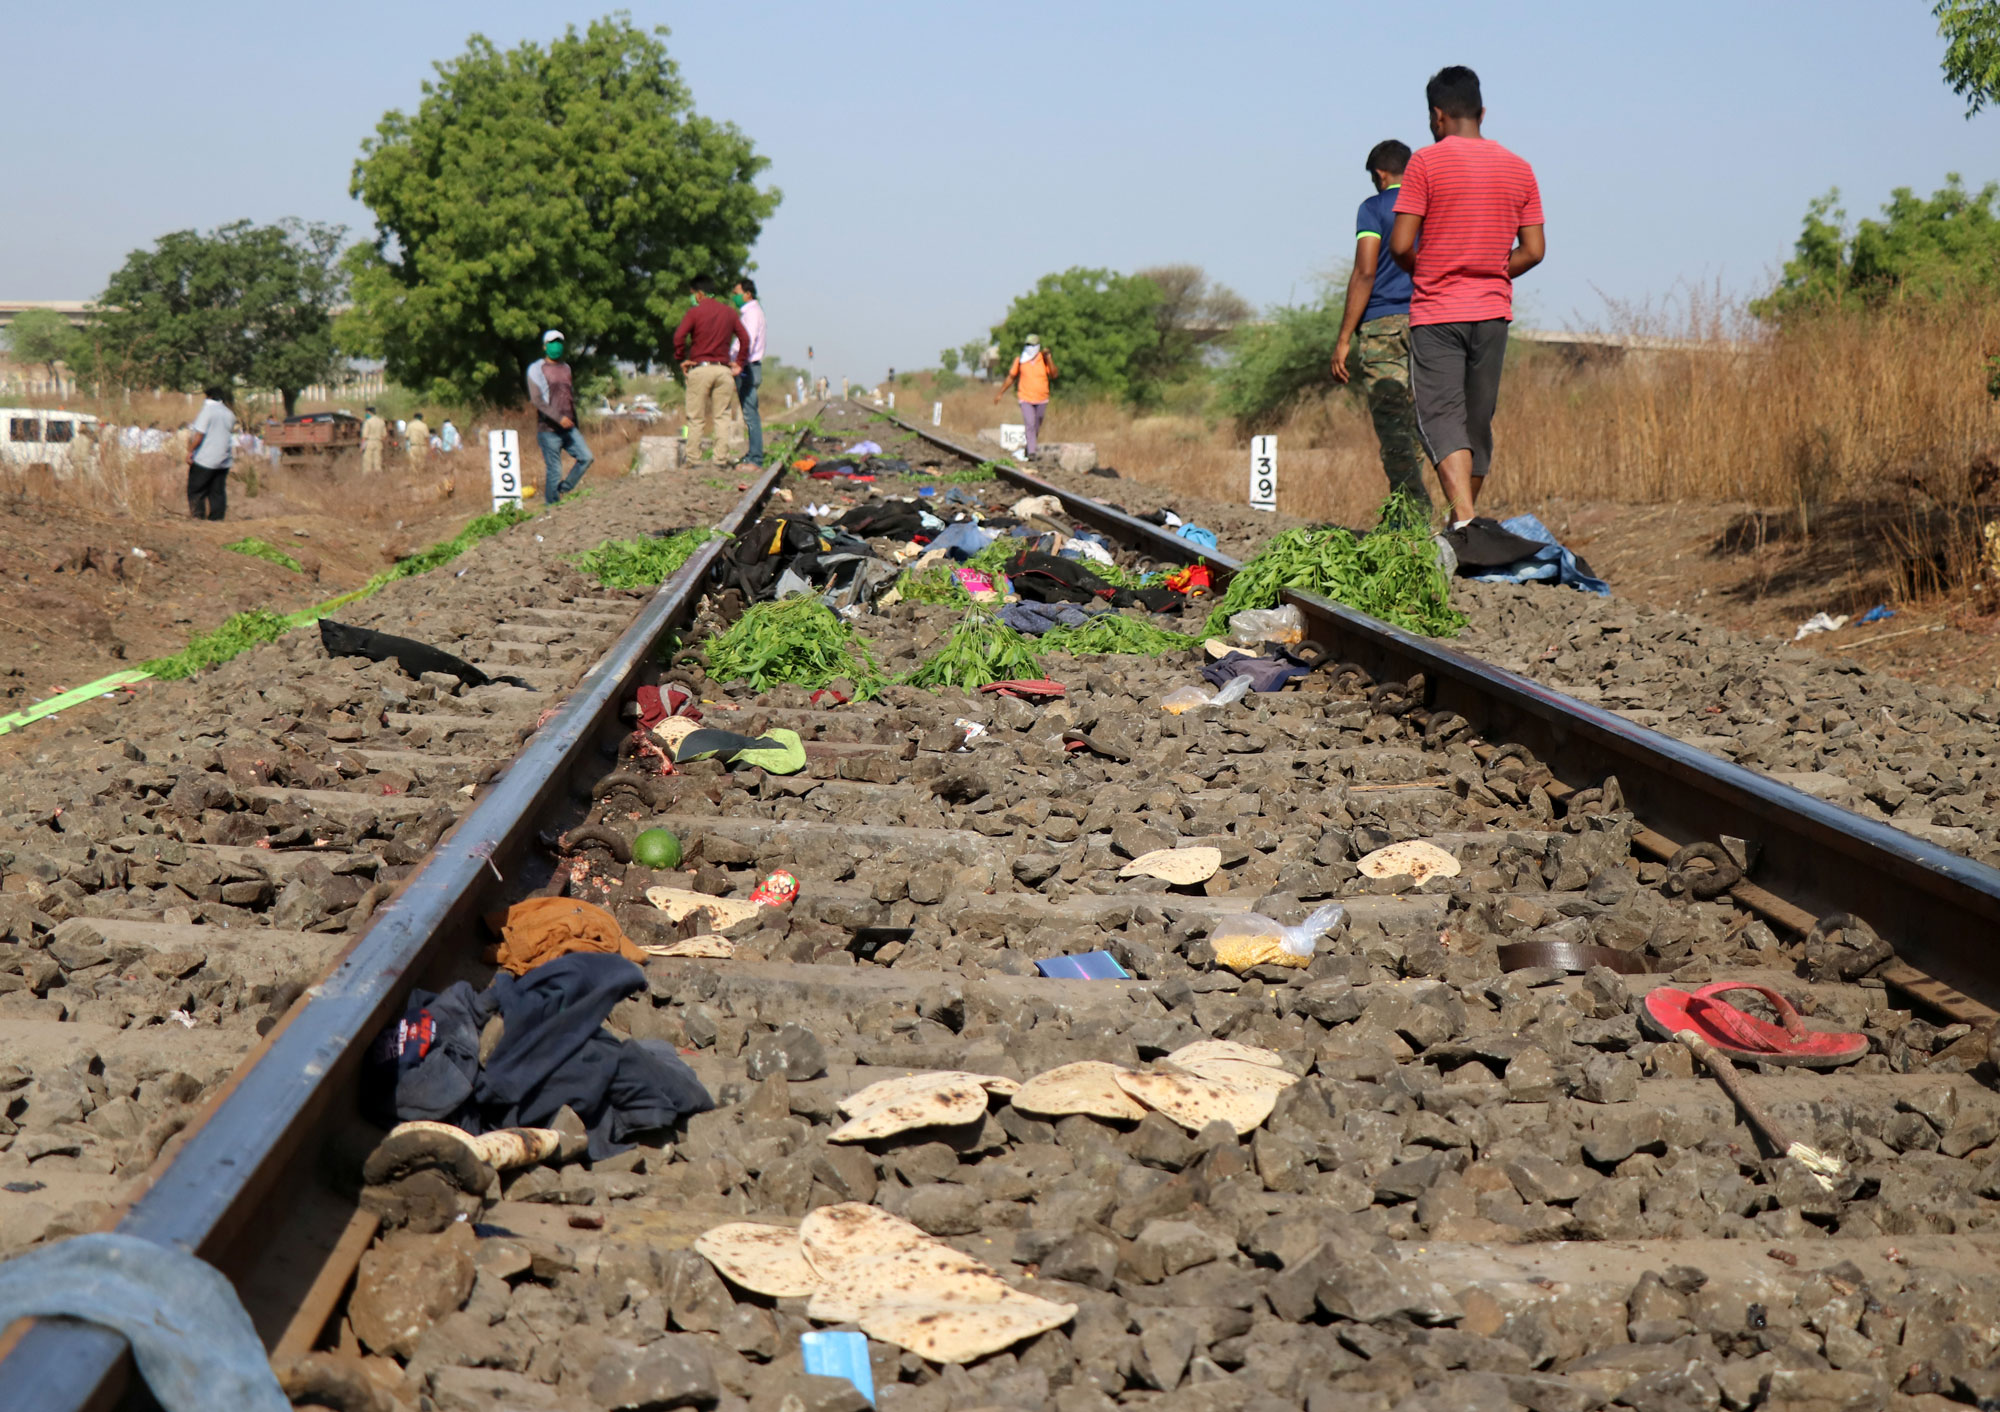 The belongings of victims are scattered on the railway track after a train ran over migrant workers sleeping in the Aurangabad district of Maharashtra, India, on May 8.